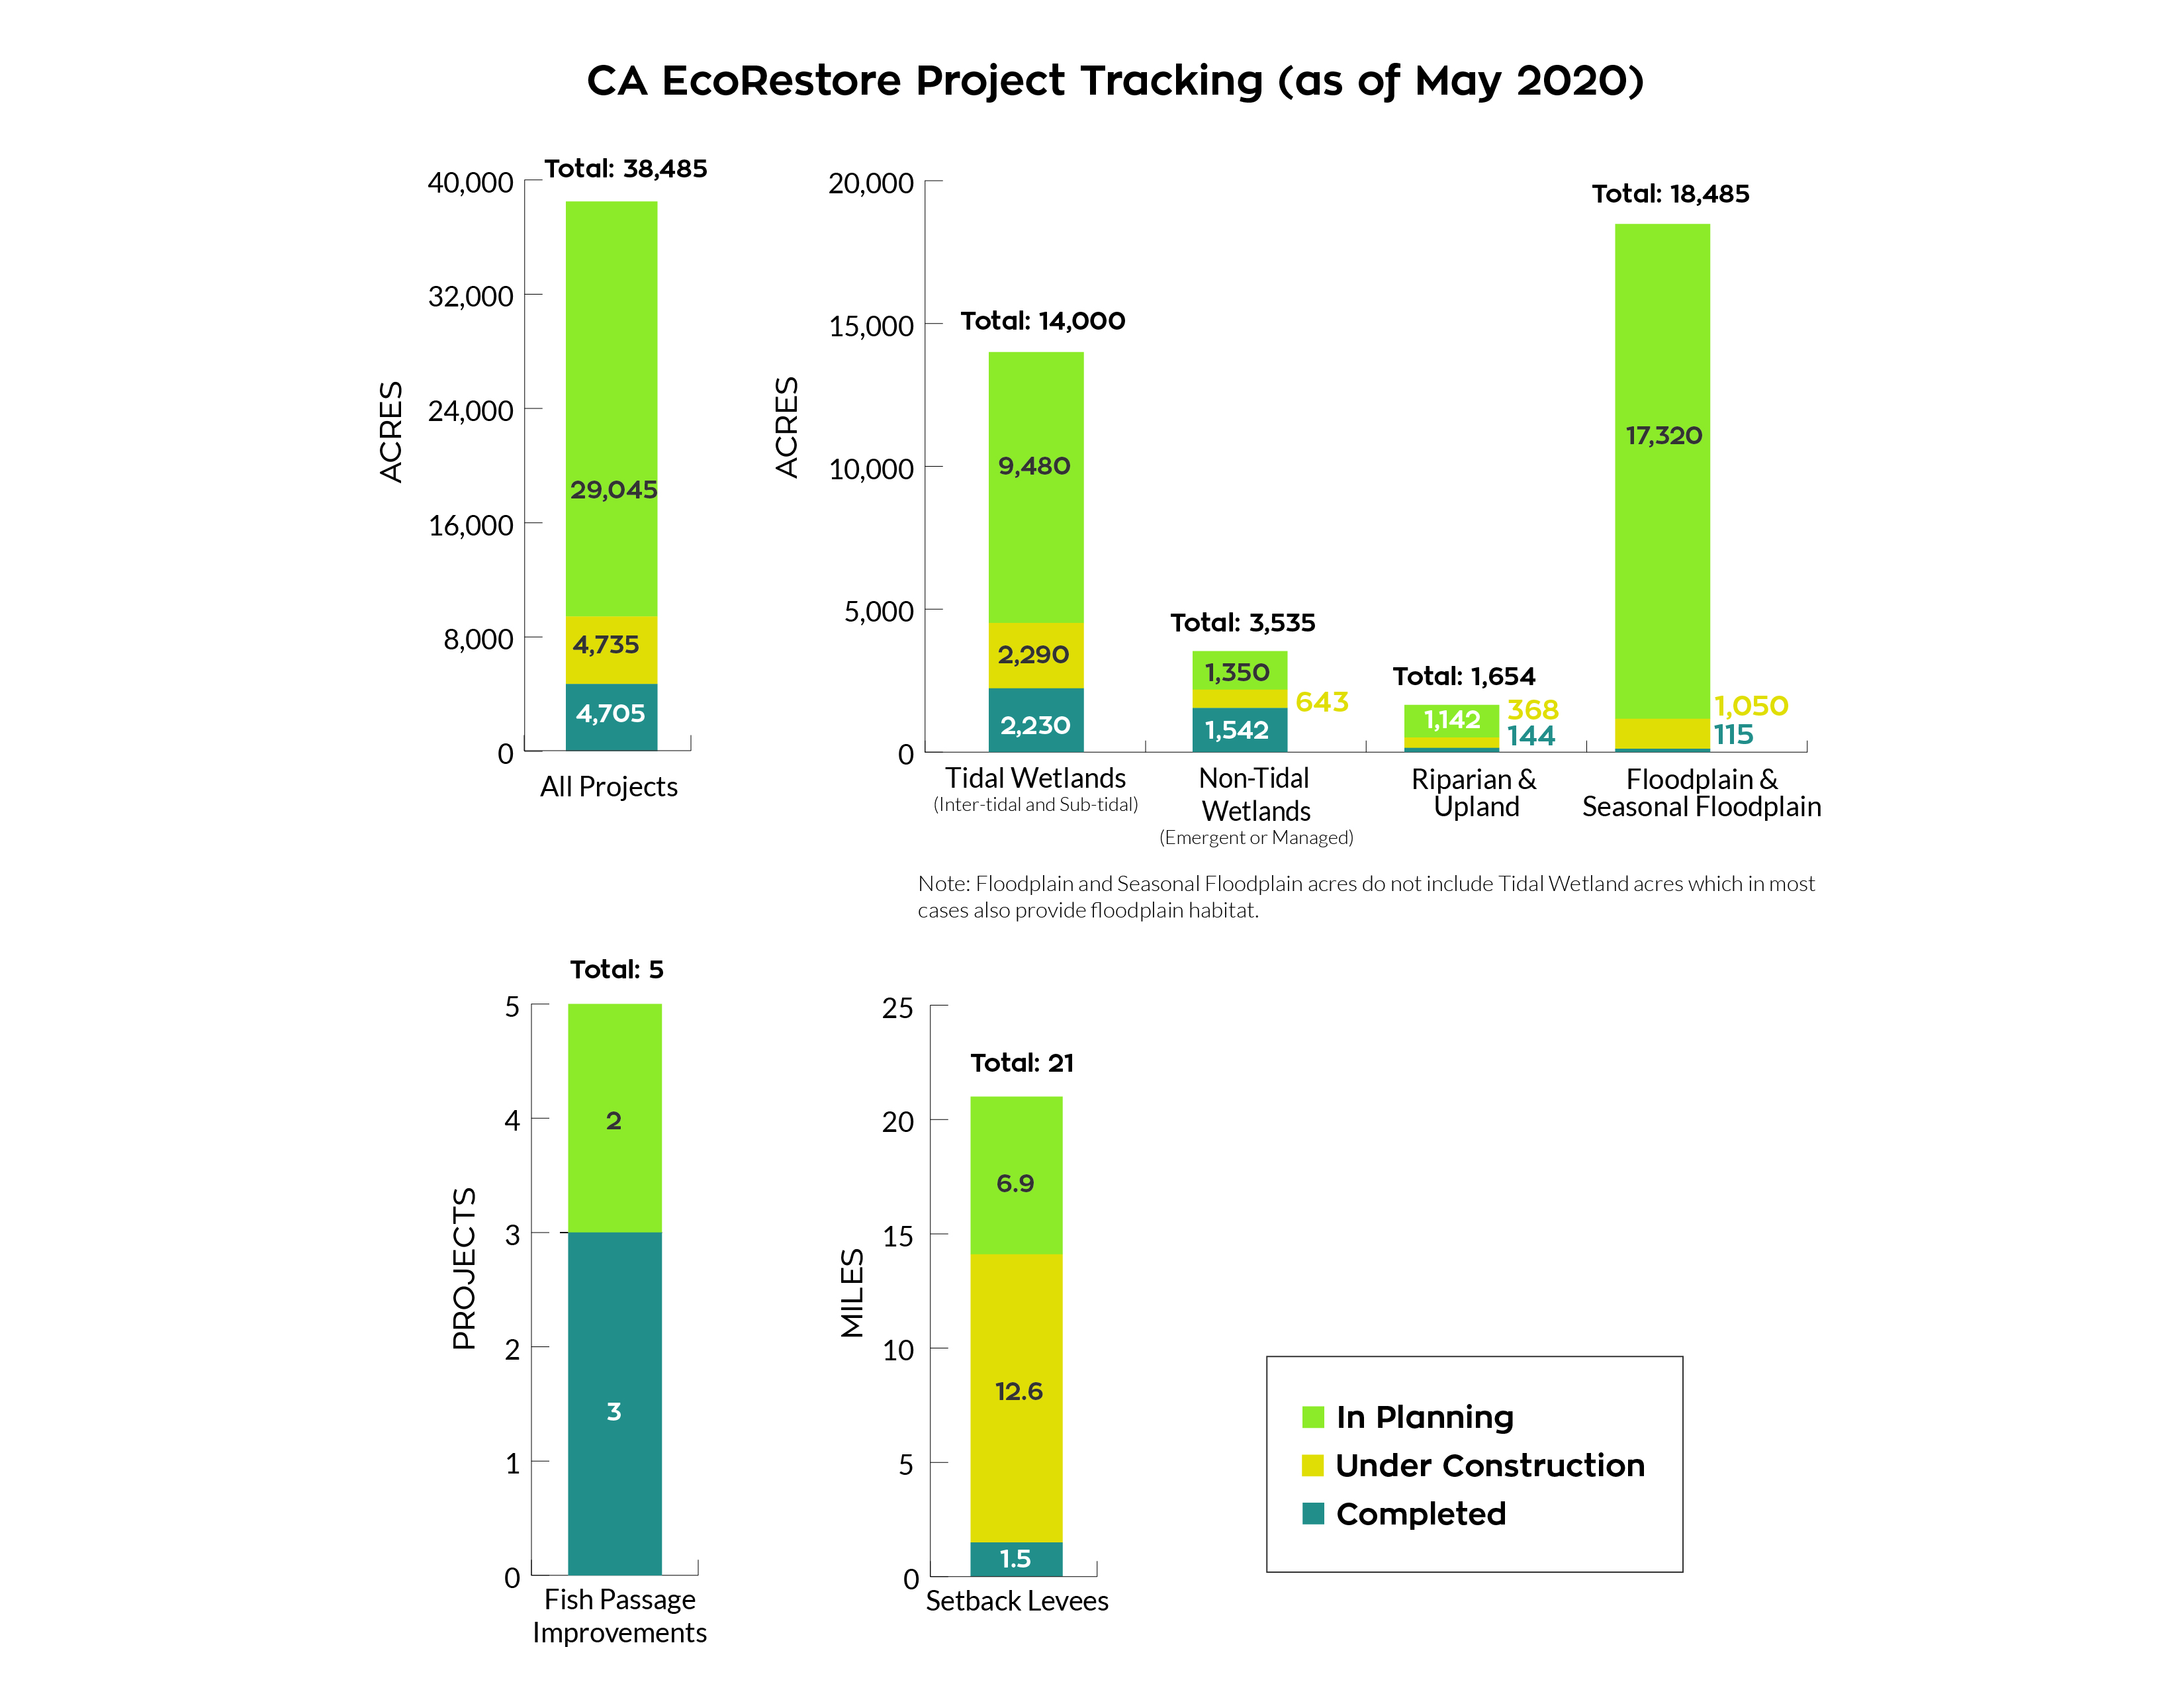 California EcoRestore Project Tracking. All projects total 38,485 acres, Tidal Wetlands total 14,000 acres, riparian and upland total 1,654 acres, floodplain and seasonal flooding total 18,485 acres.